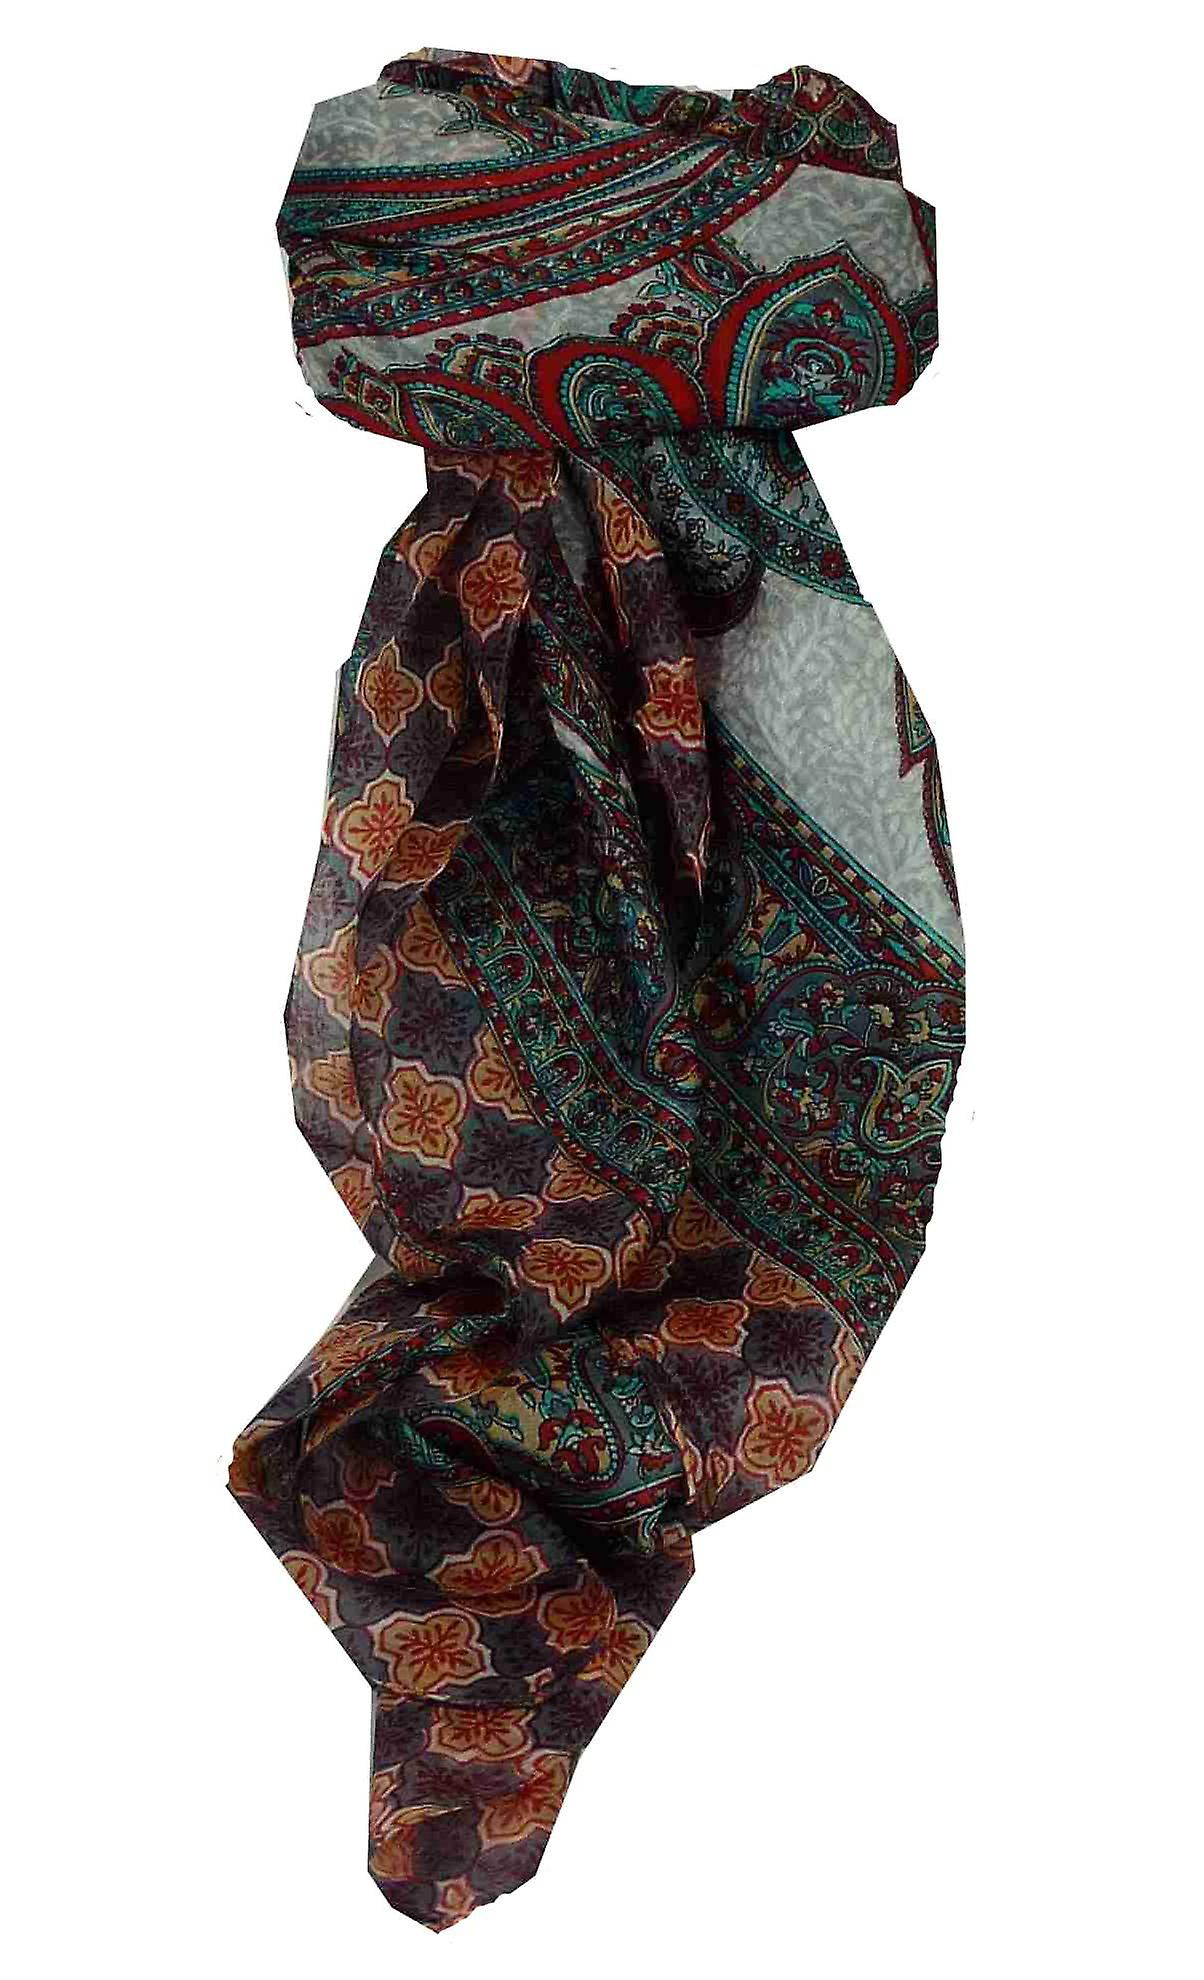 Mulberry Silk Traditional Square Scarf Bibi Pearl by Pashmina & Silk